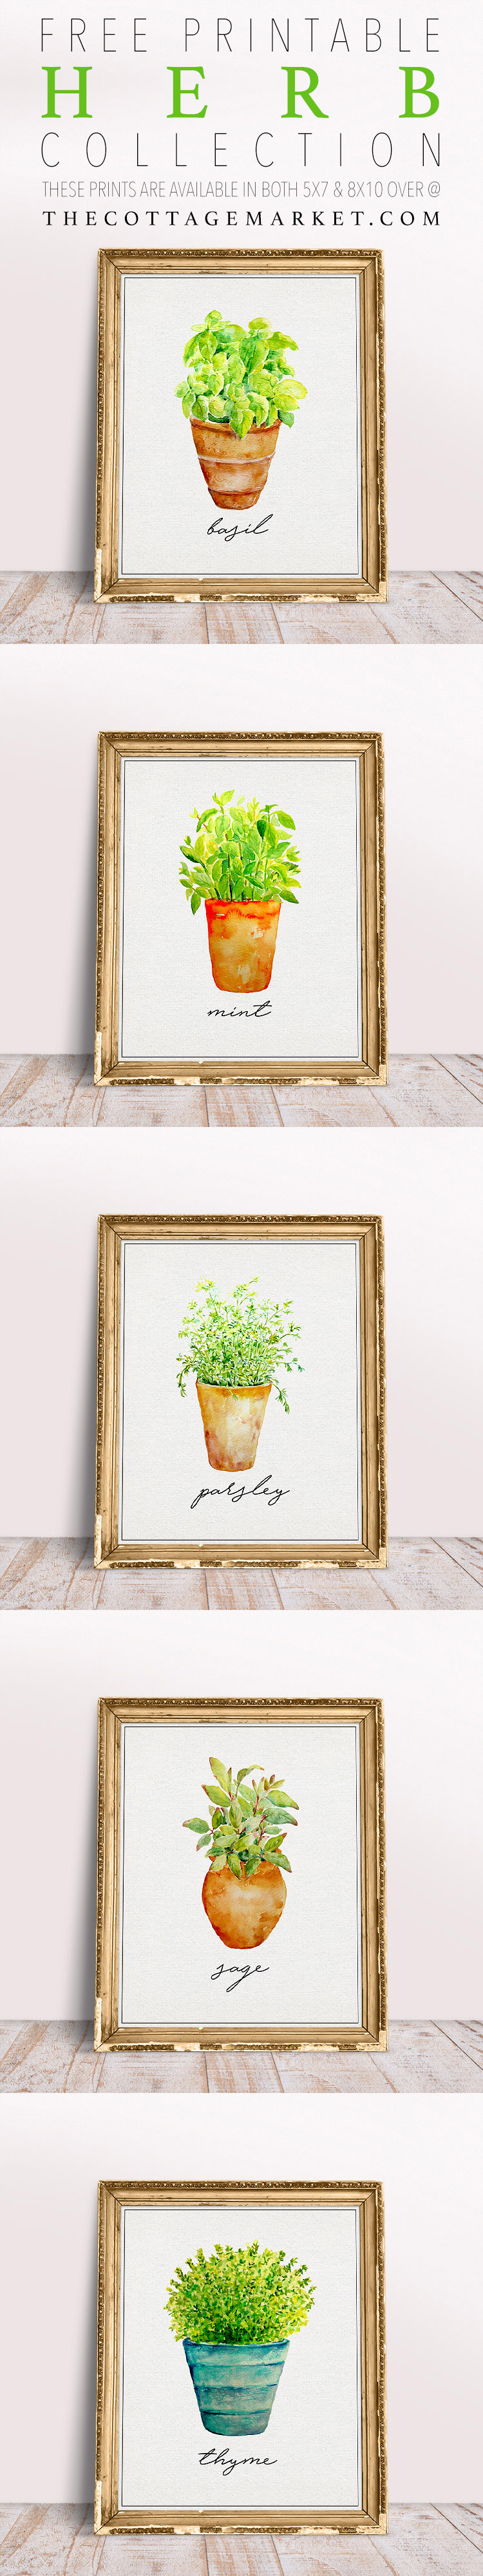 Free Printable Vegetable Collection The Cottage Market